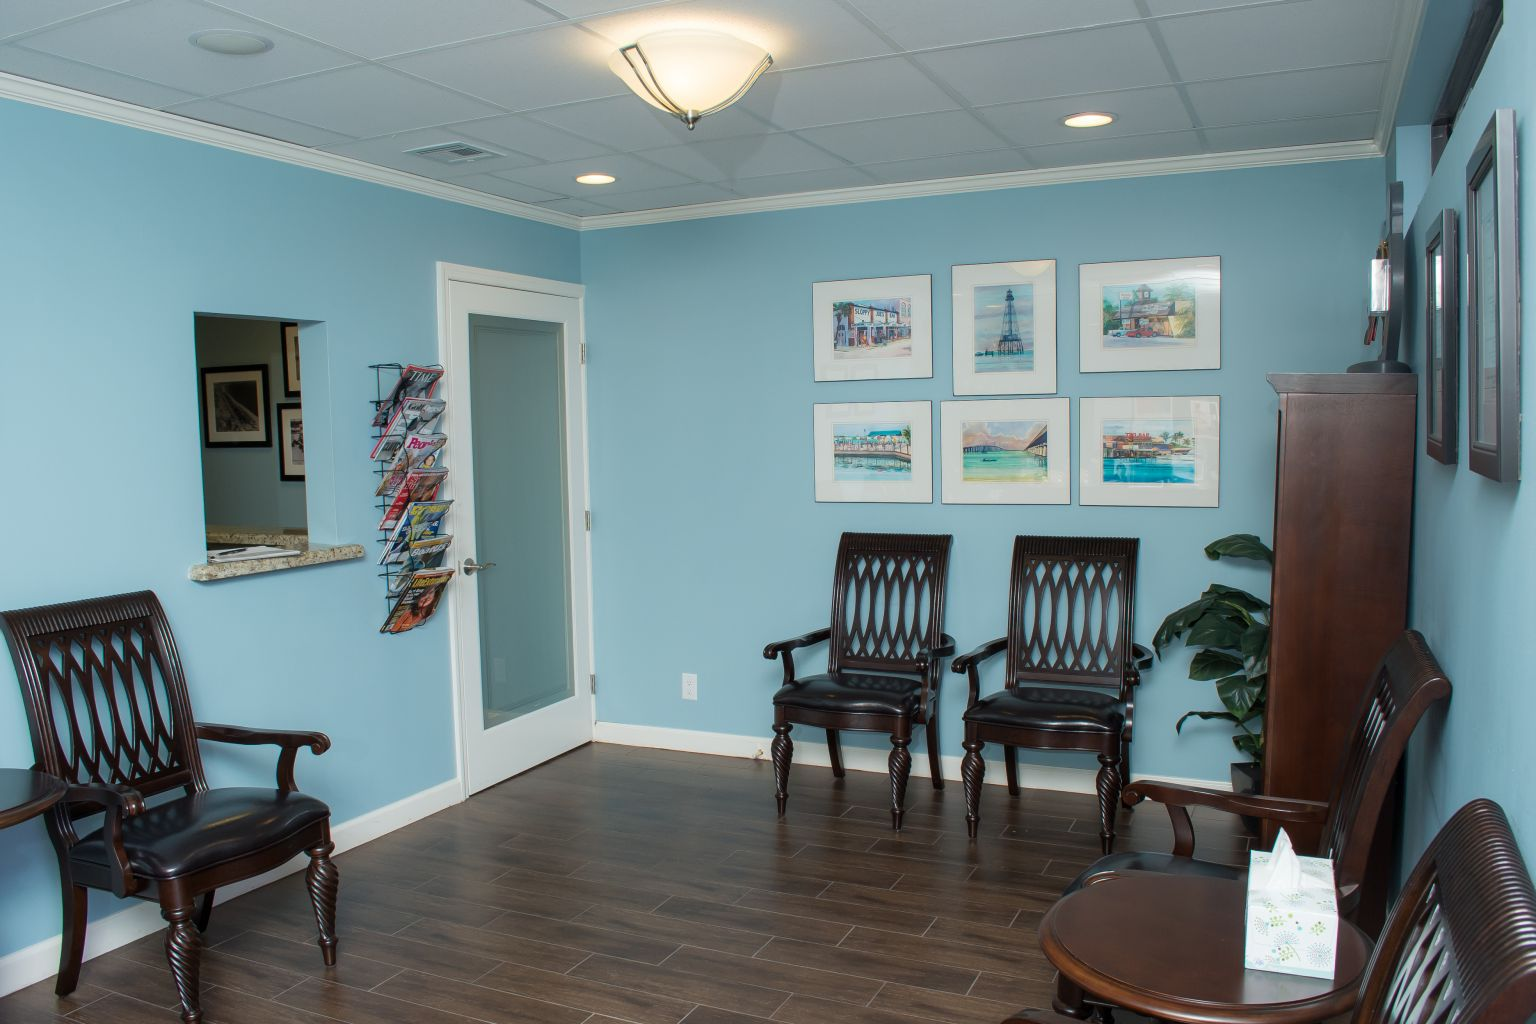 Sands Chiropractic Waiting Room